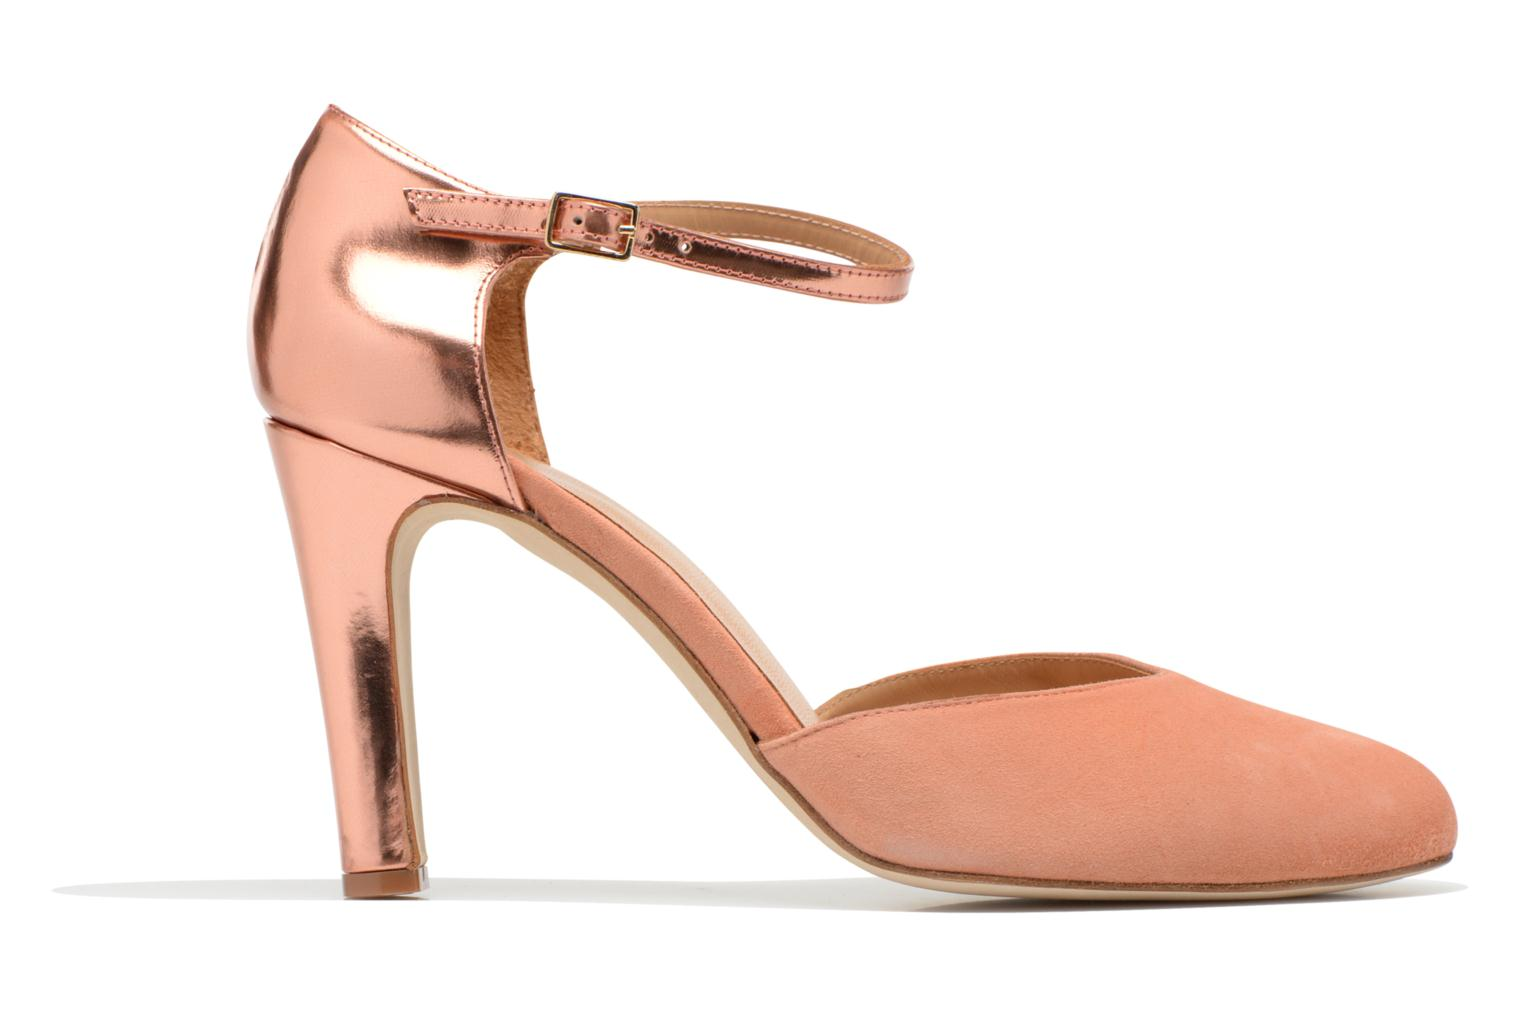 Marques Chaussure femme Made by SARENZA femme Loulou au Luco #2 Specchio Rose Gold + ante abricot